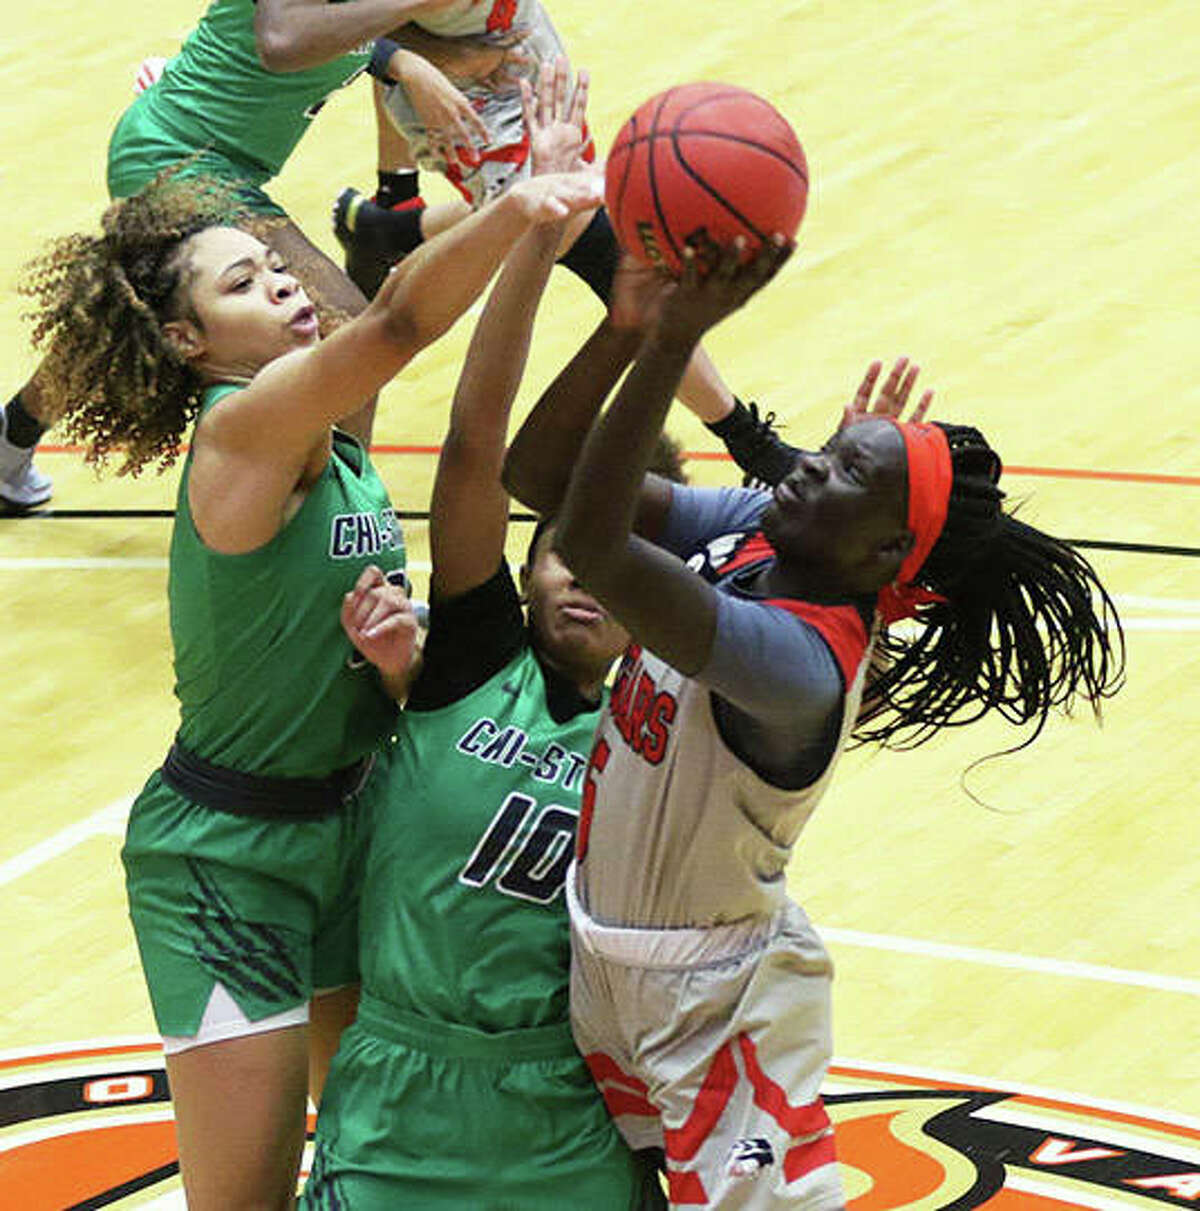 SIUE's Ajulu Thathat (right) draws a foul while shooting over two Chicago State defenders on Monday at First Community Arena in Edwardsville.